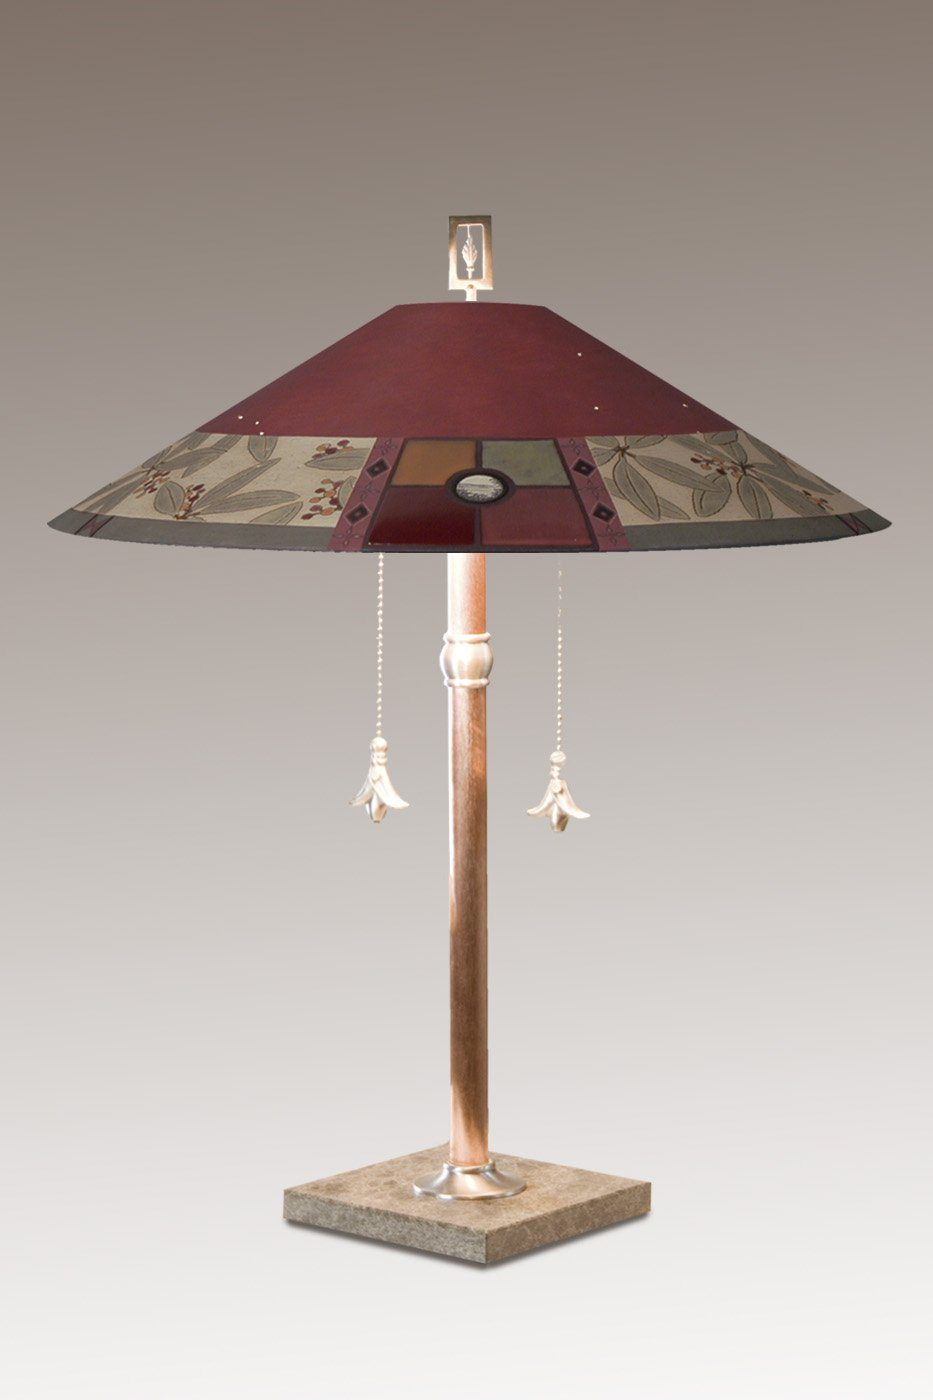 Copper Table Lamp with Large Wide Conical Ceramic Shade in Mountain Laurel in Redwood